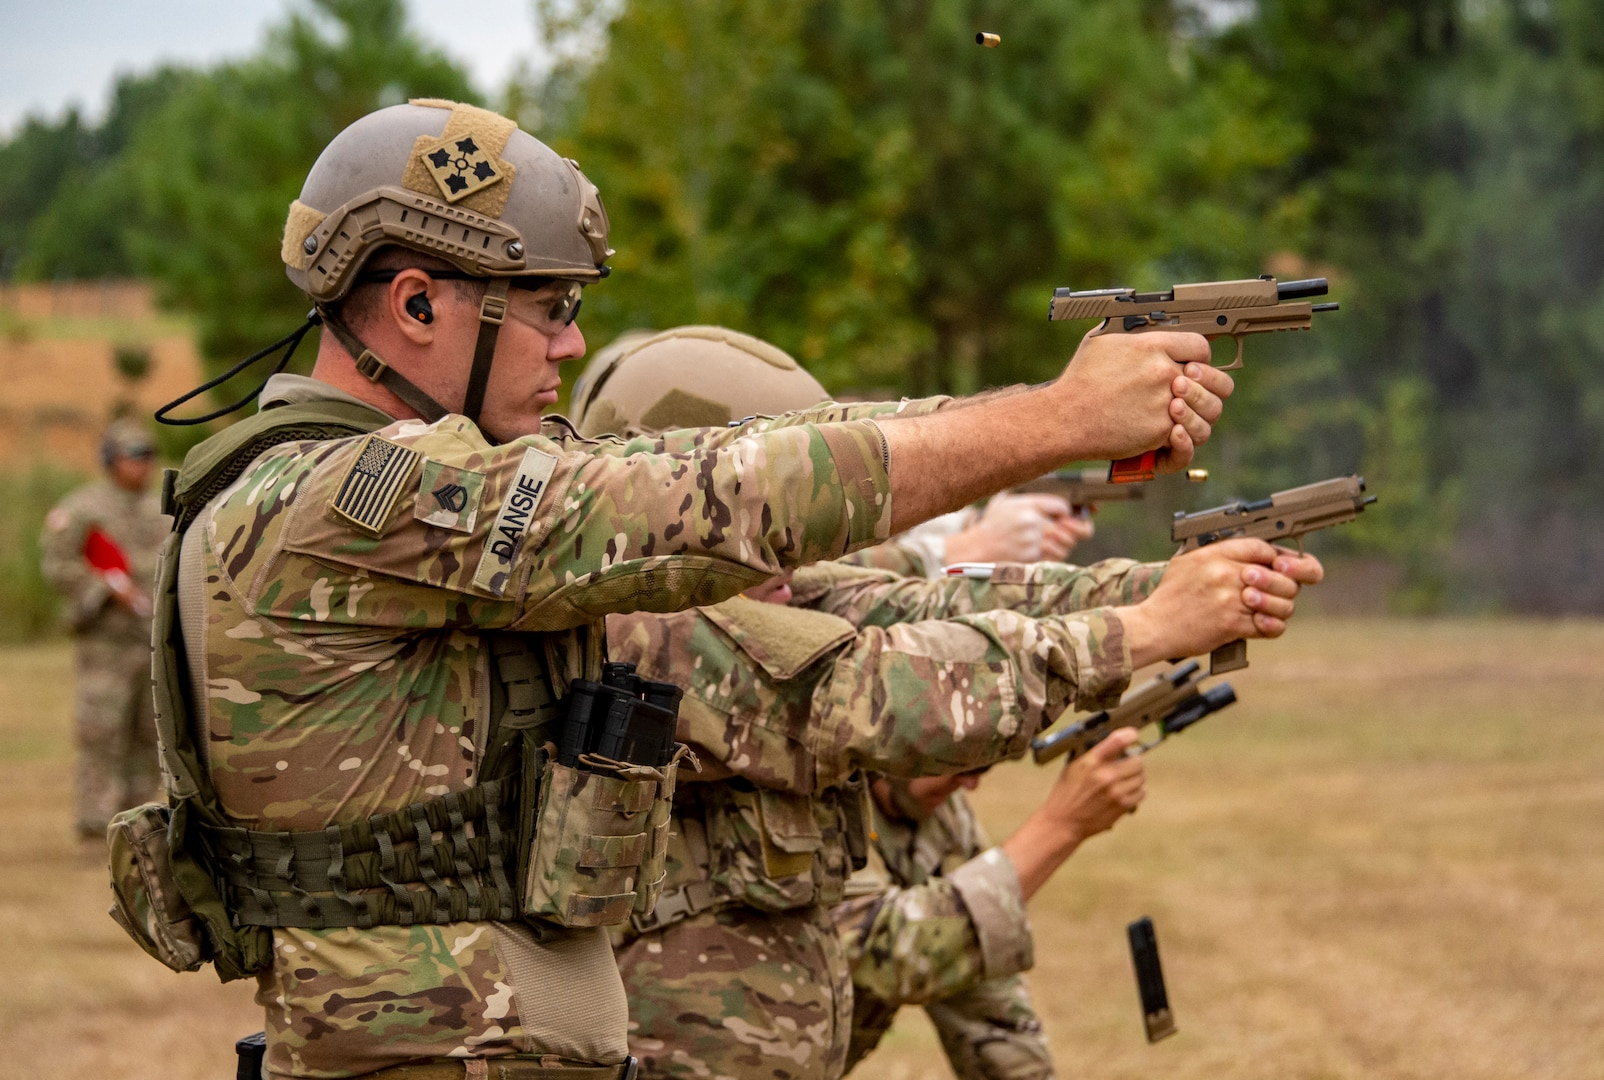 Staff Sgt. James Dansie, Utah National Guard, fires his pistol Sept. 2, 2021, during the General George Patton Combat Pistol match of the 50th Winston P. Wilson and the 30th Armed Forces Skill at Arms Championships, hosted by the National Guard Marksmanship Training Center, held at the Robinson Joint Maneuver Training Center, North Little Rock, Ark.